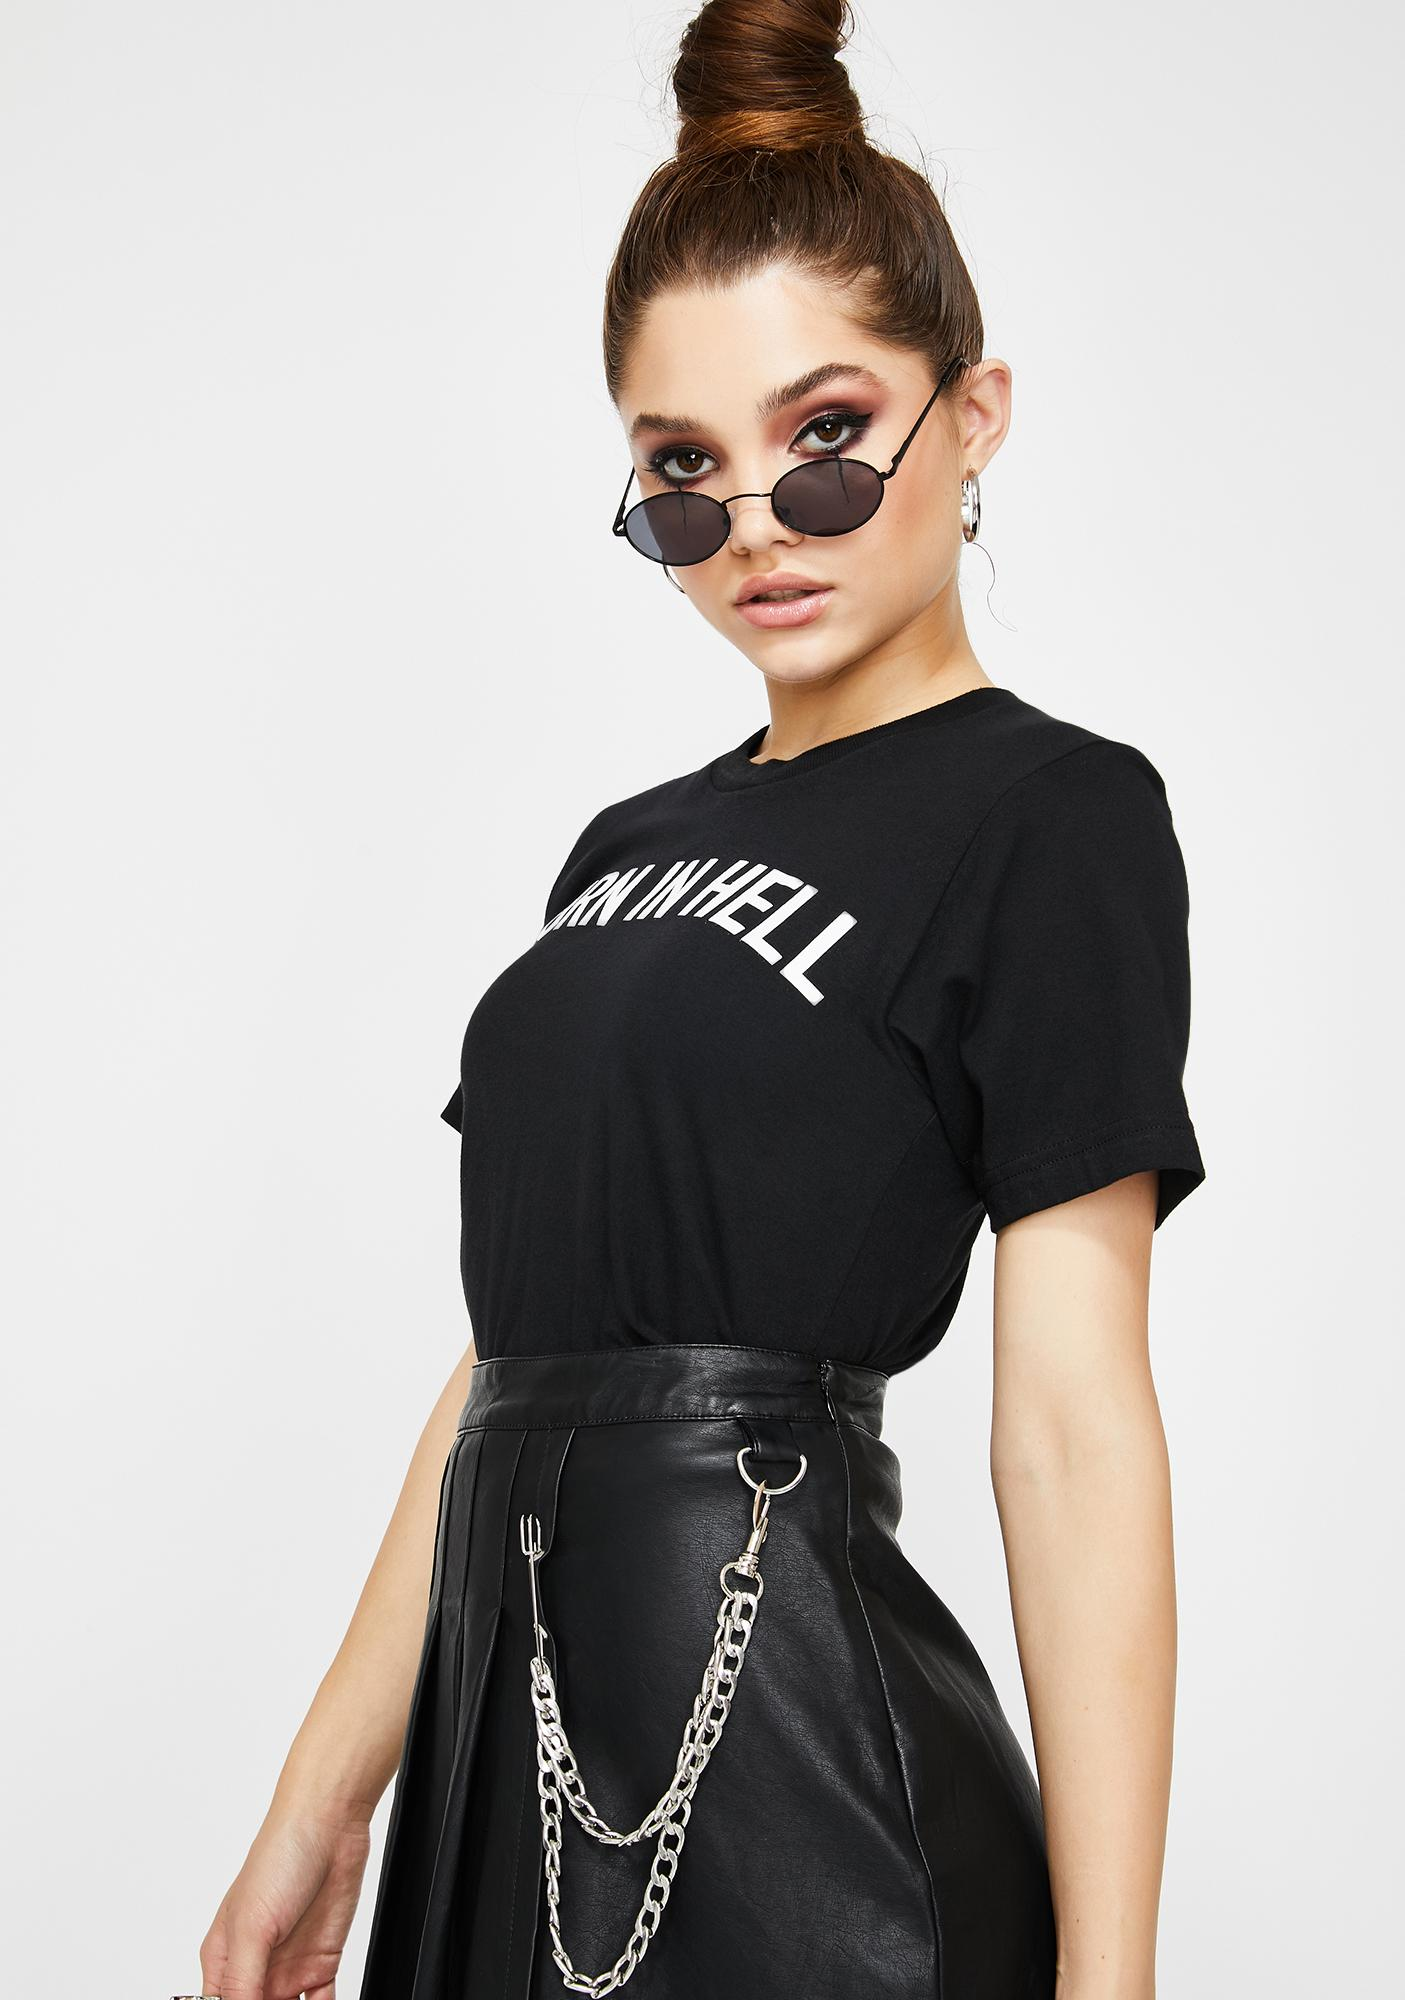 Mary Wyatt London Burn In Hell Graphic Tee